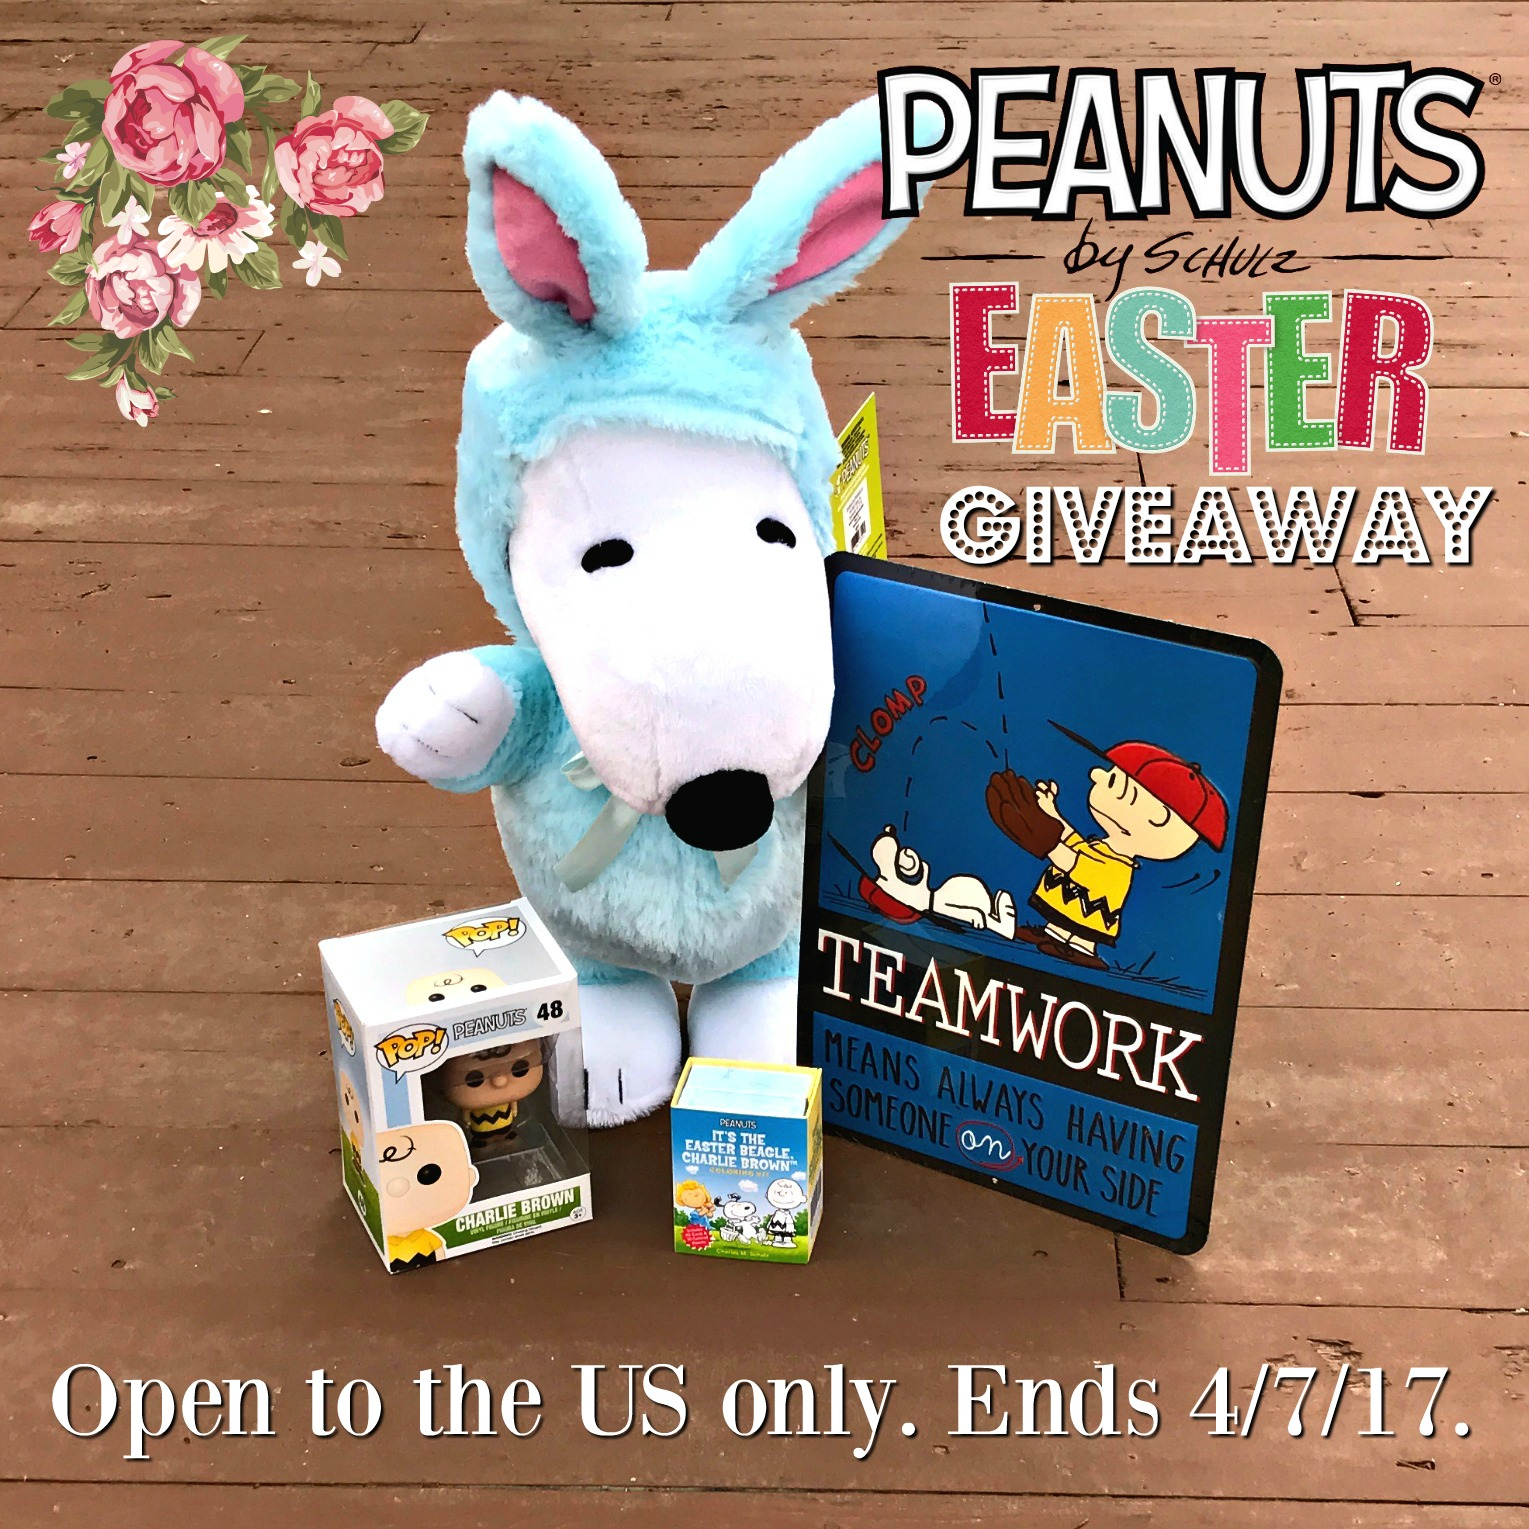 Enter the Peanuts Easter Giveaway. Ends 4/7